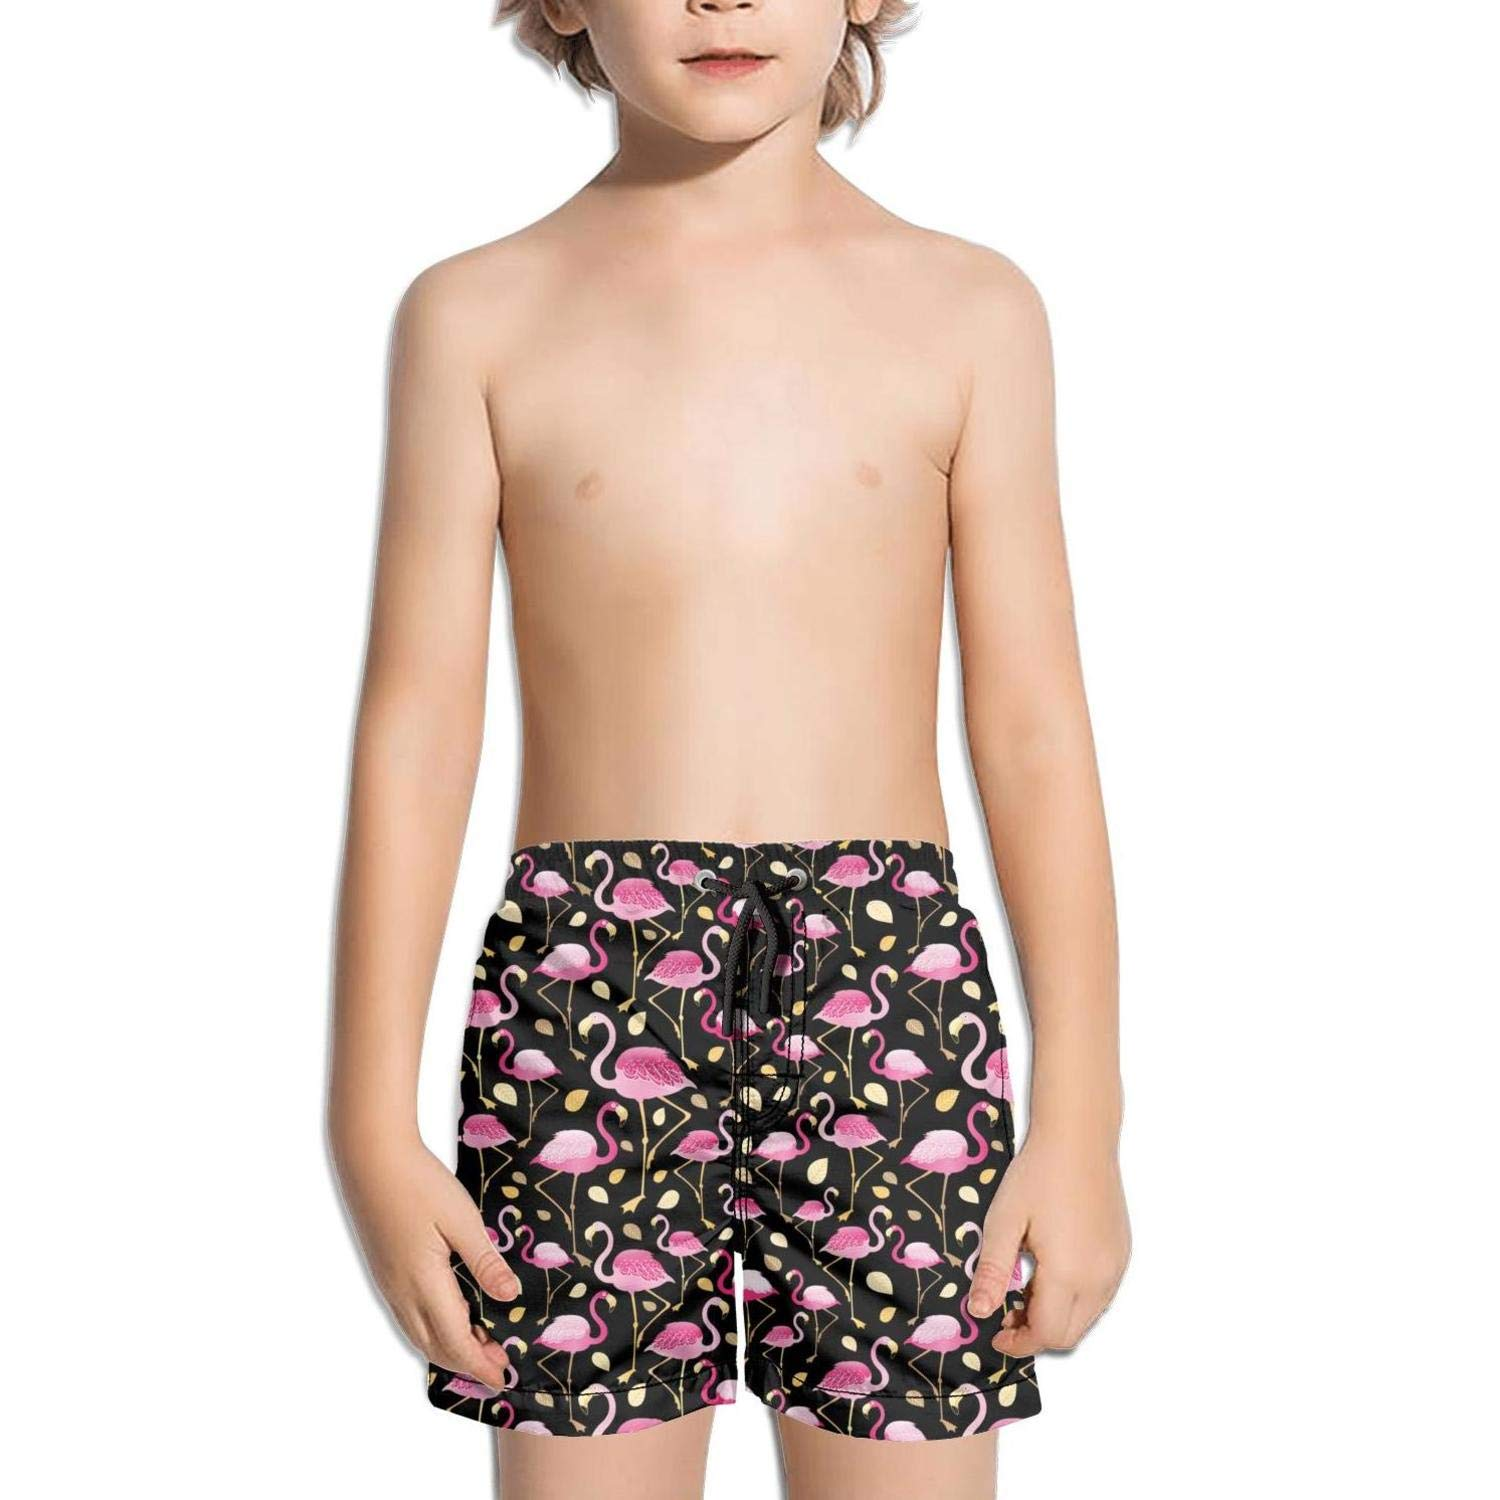 FullBo Love Flamingos are Awesome Pink Little Boys Short Swim Trunks Quick Dry Beach Shorts